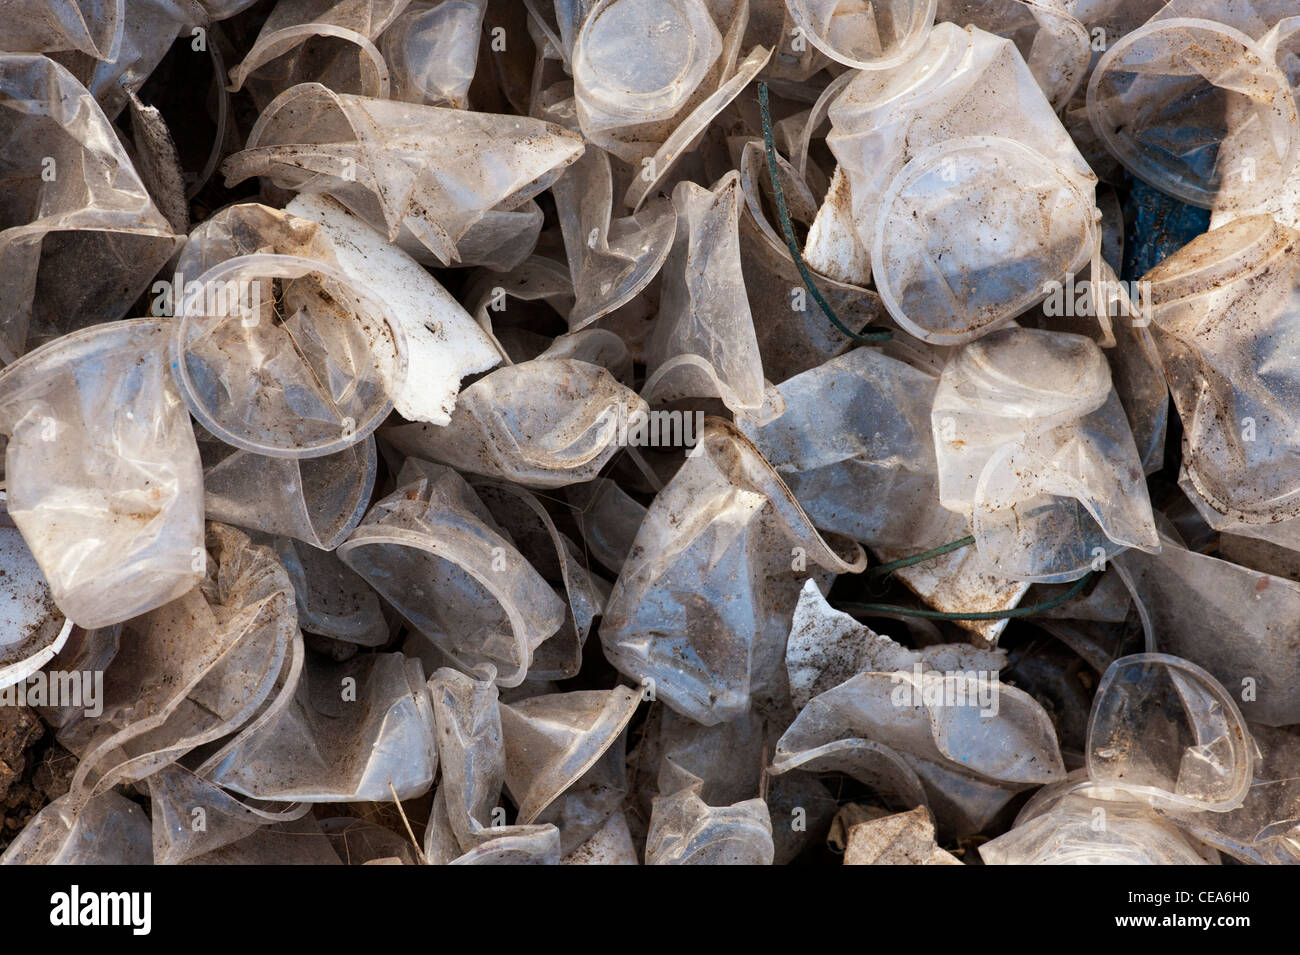 Discarded plastic tea cups in the Indian countryside. Andhra Pradesh, India - Stock Image